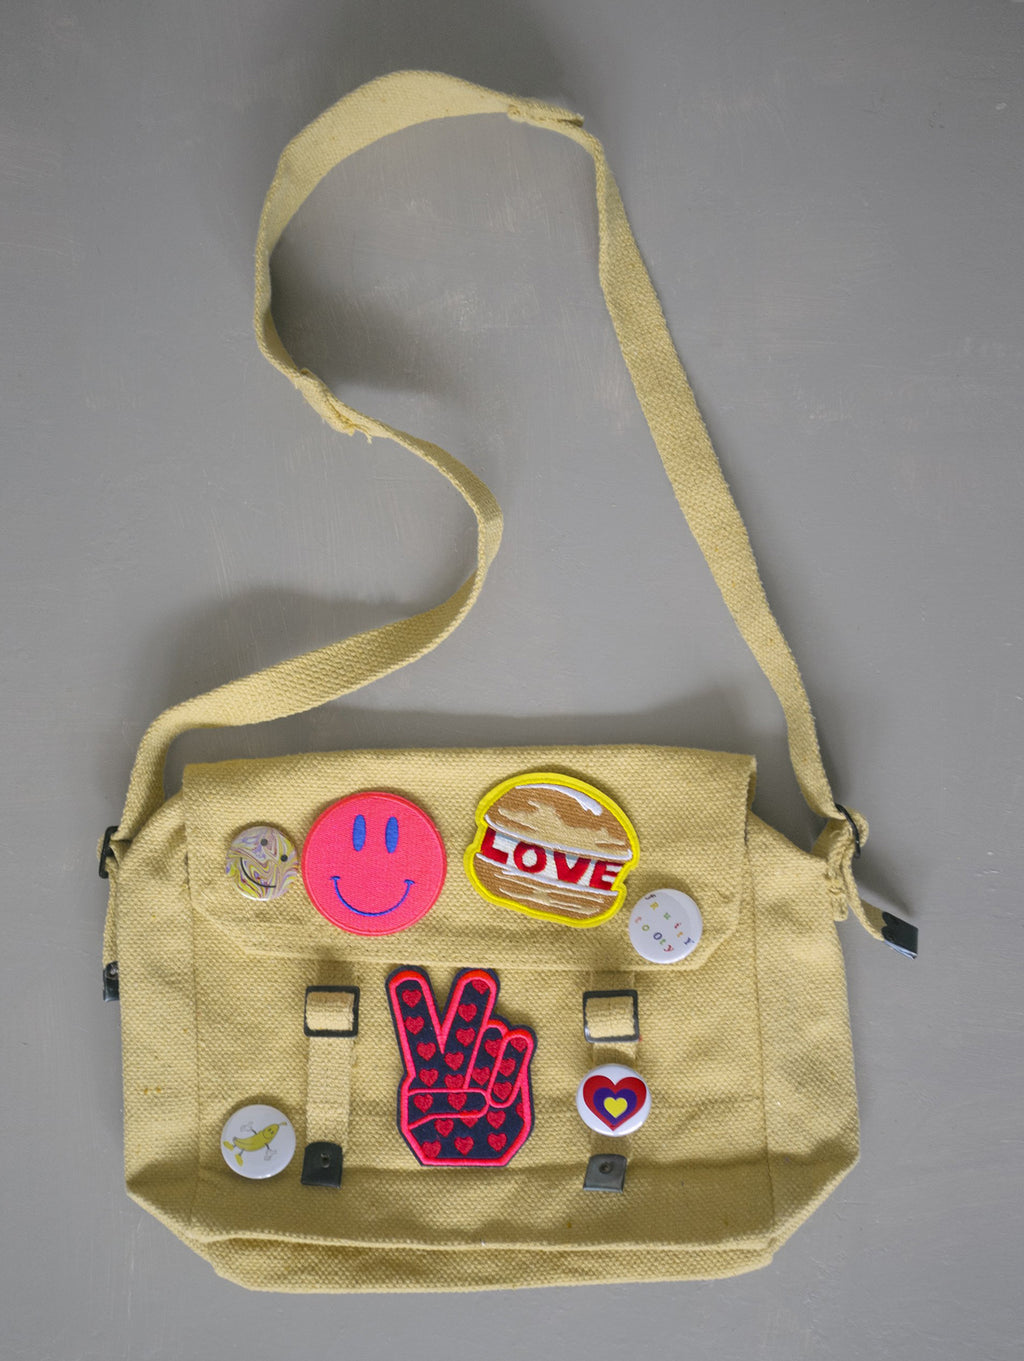 KIT BAG + 3 x PATCHES +/OR BADGE SETS